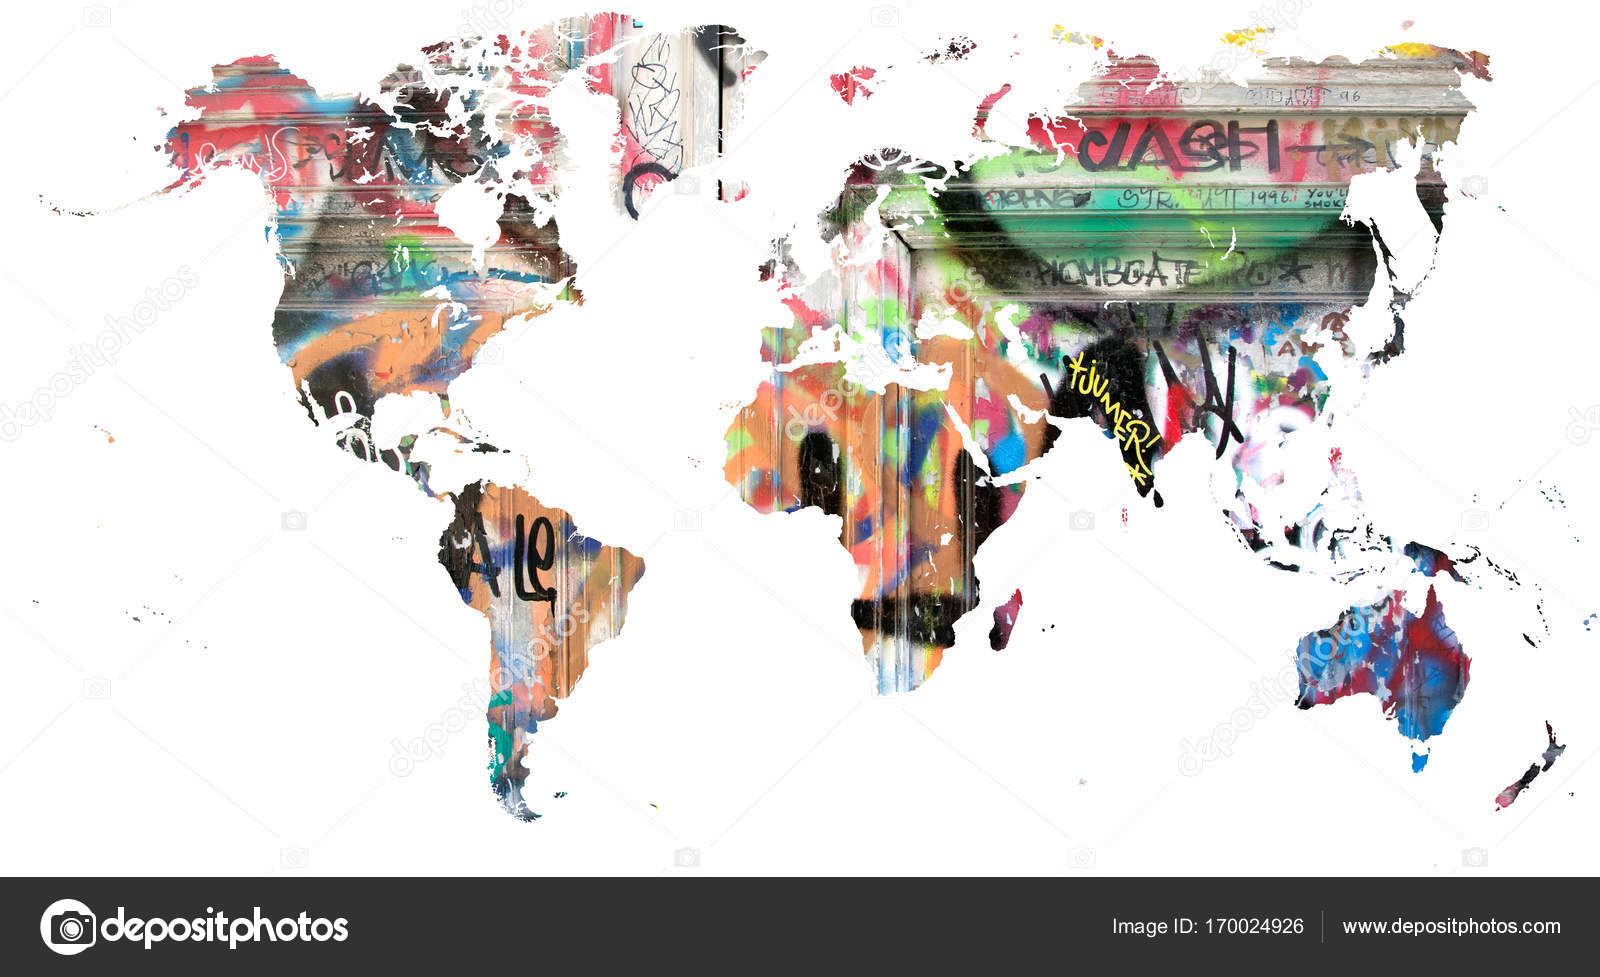 World map cut out in multi colored graffiti stock photo toucanet cut out of the continents filled by multi colored graffiti photo by toucanet gumiabroncs Choice Image